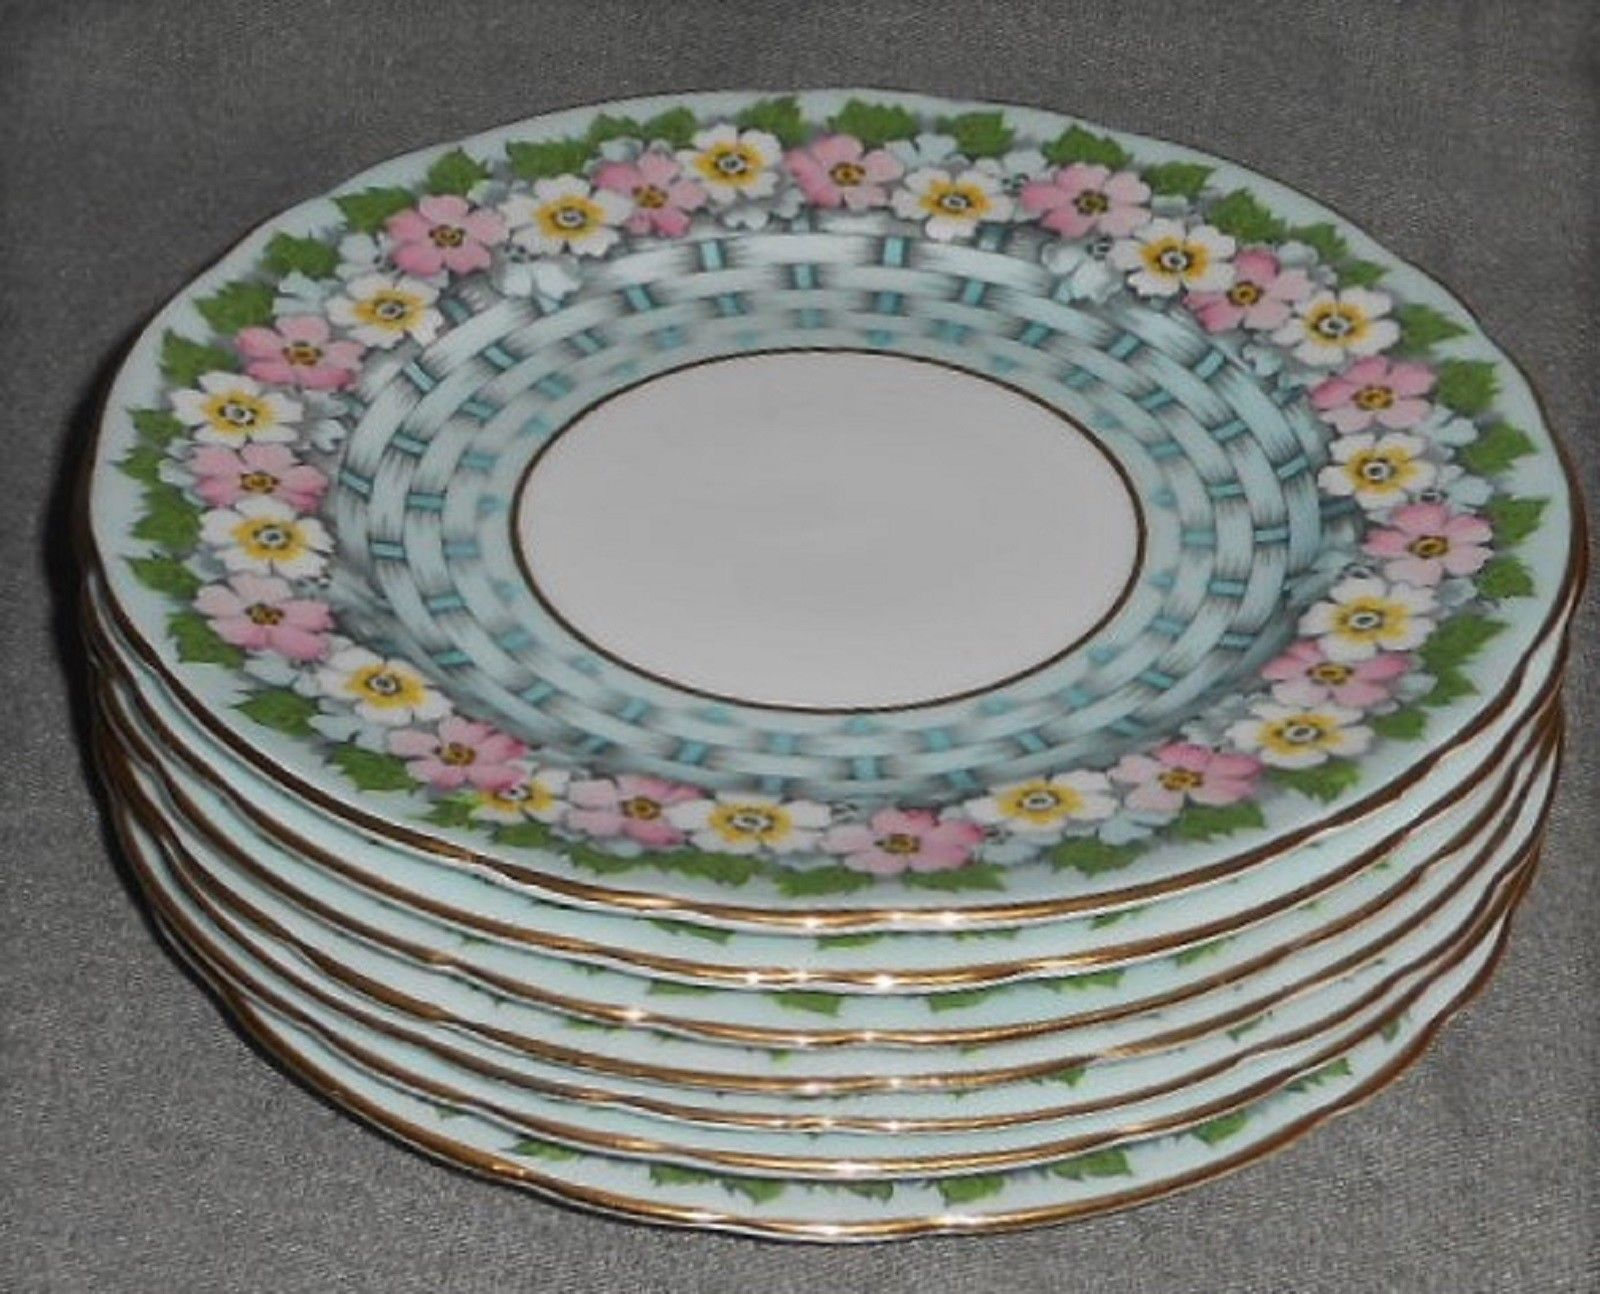 Set (7) Aynsley Bone China BASKETWEAVE FLORAL PATTERN Salad/Cake Plates ENGLAND